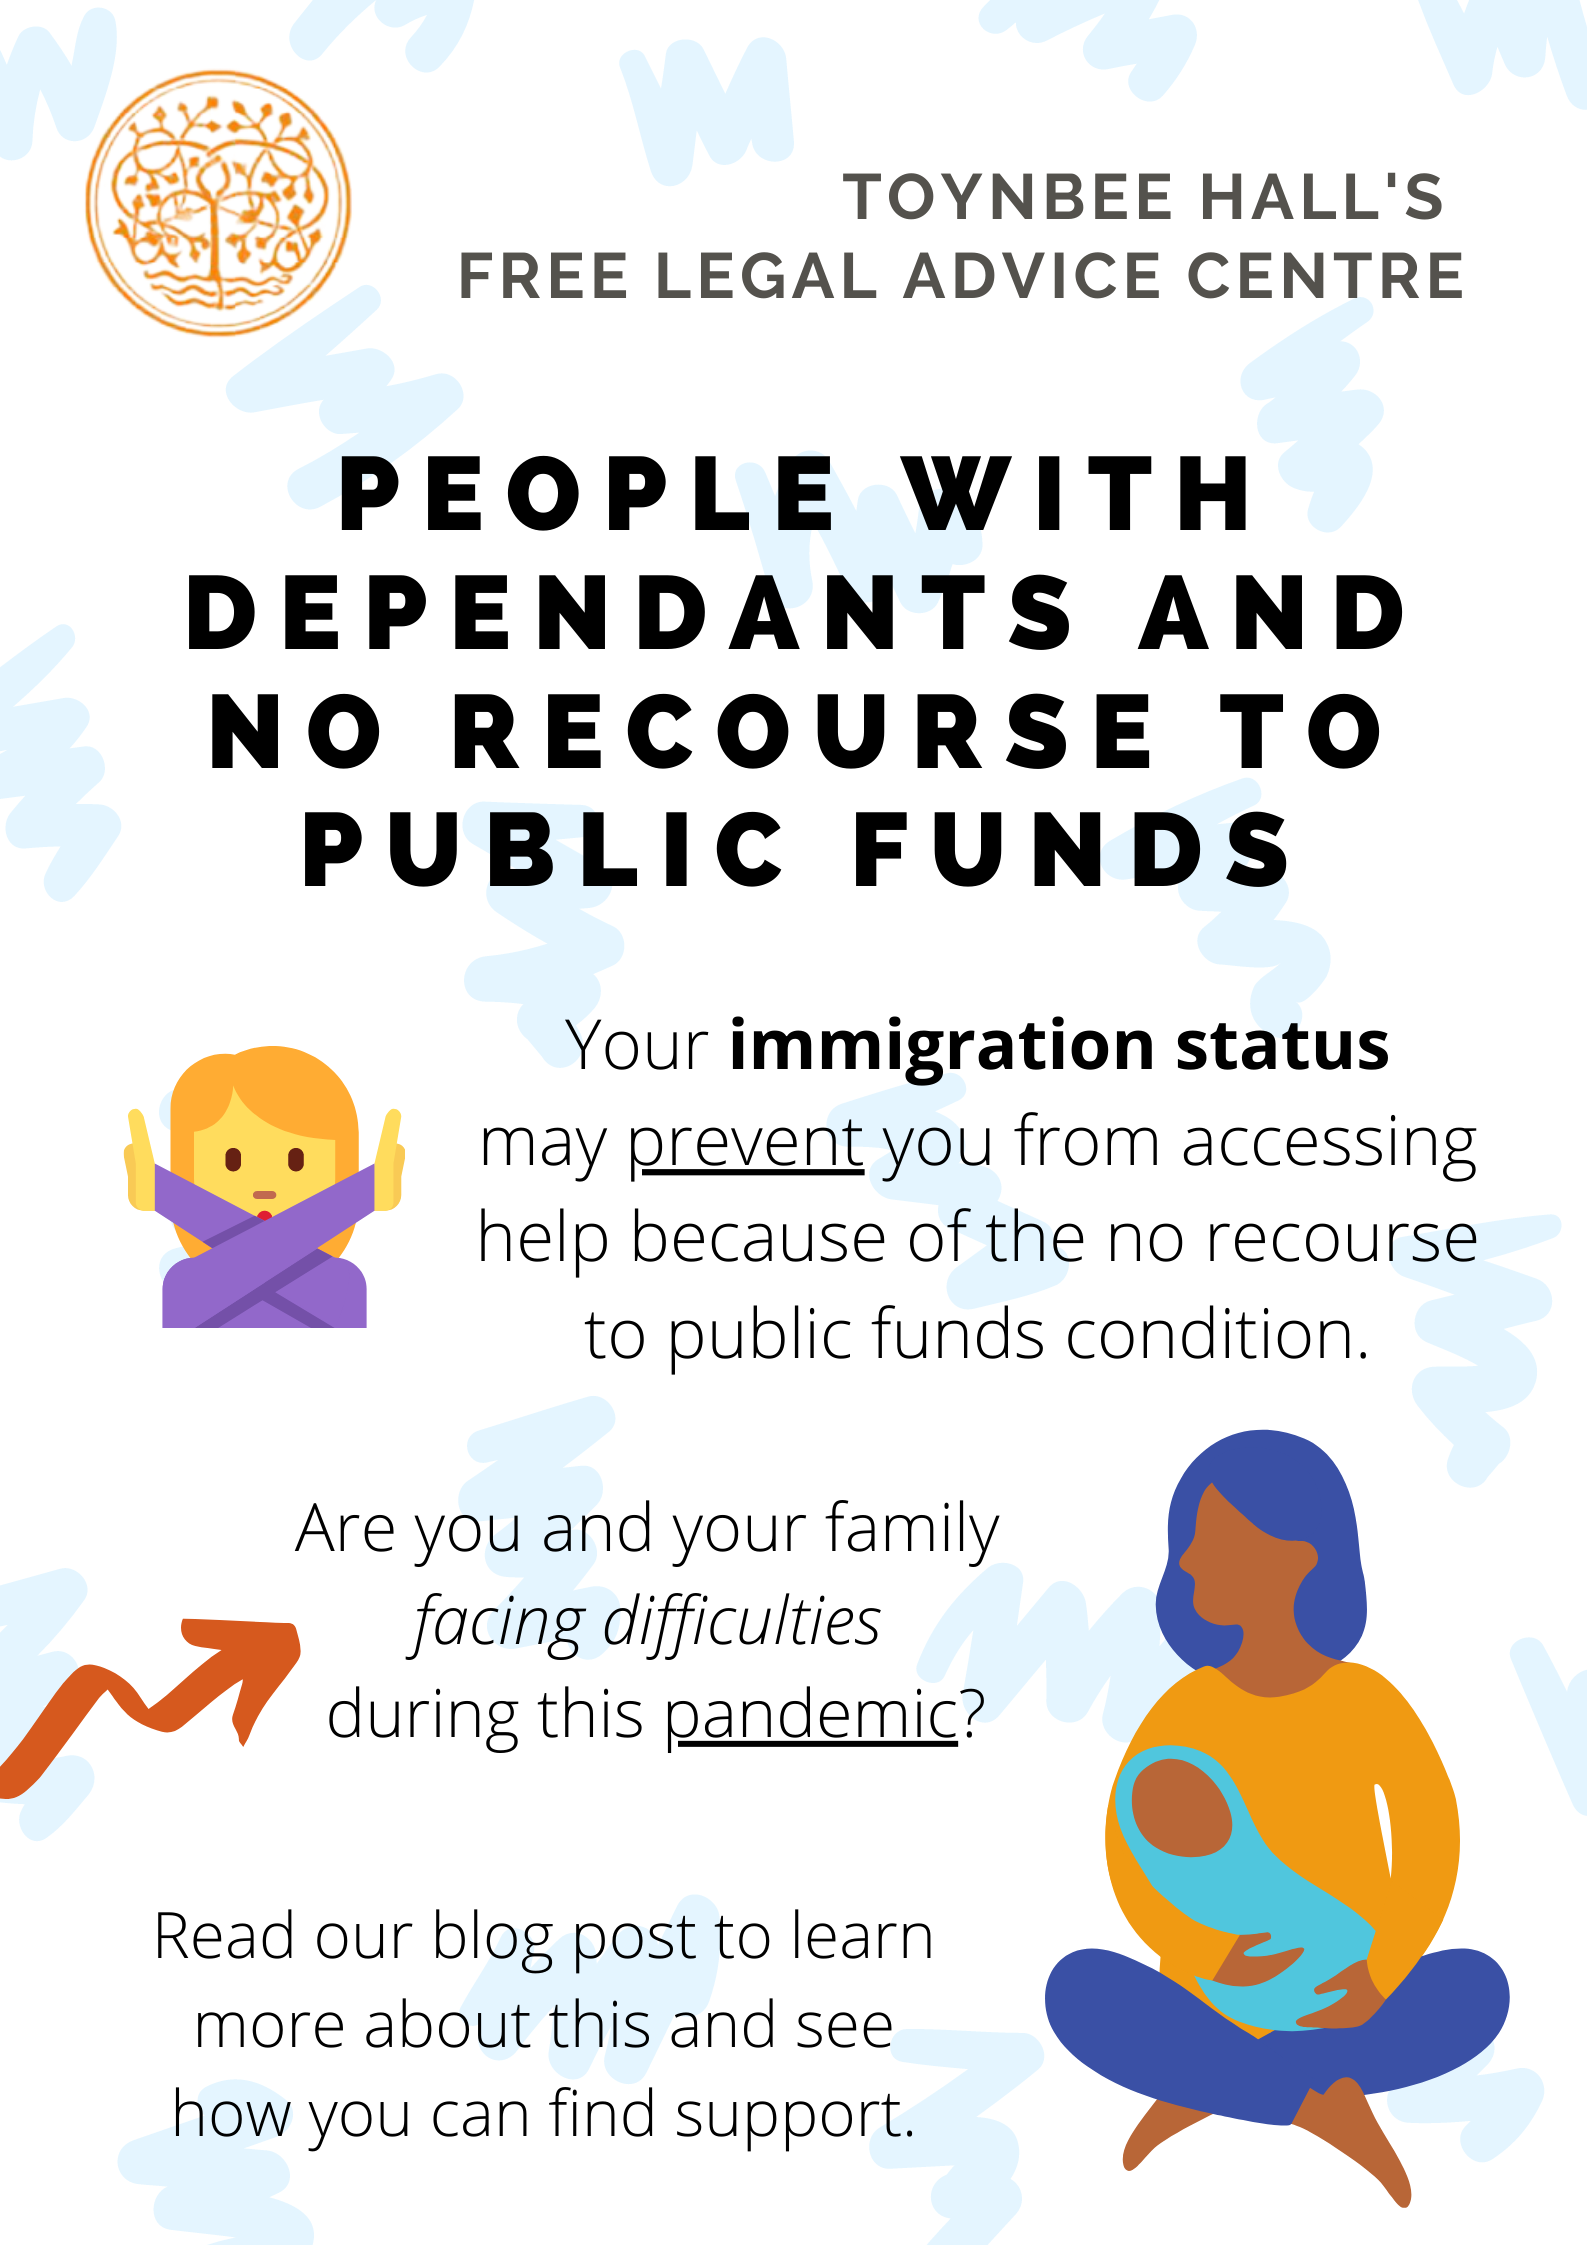 No recourse to public funds - people with dependants